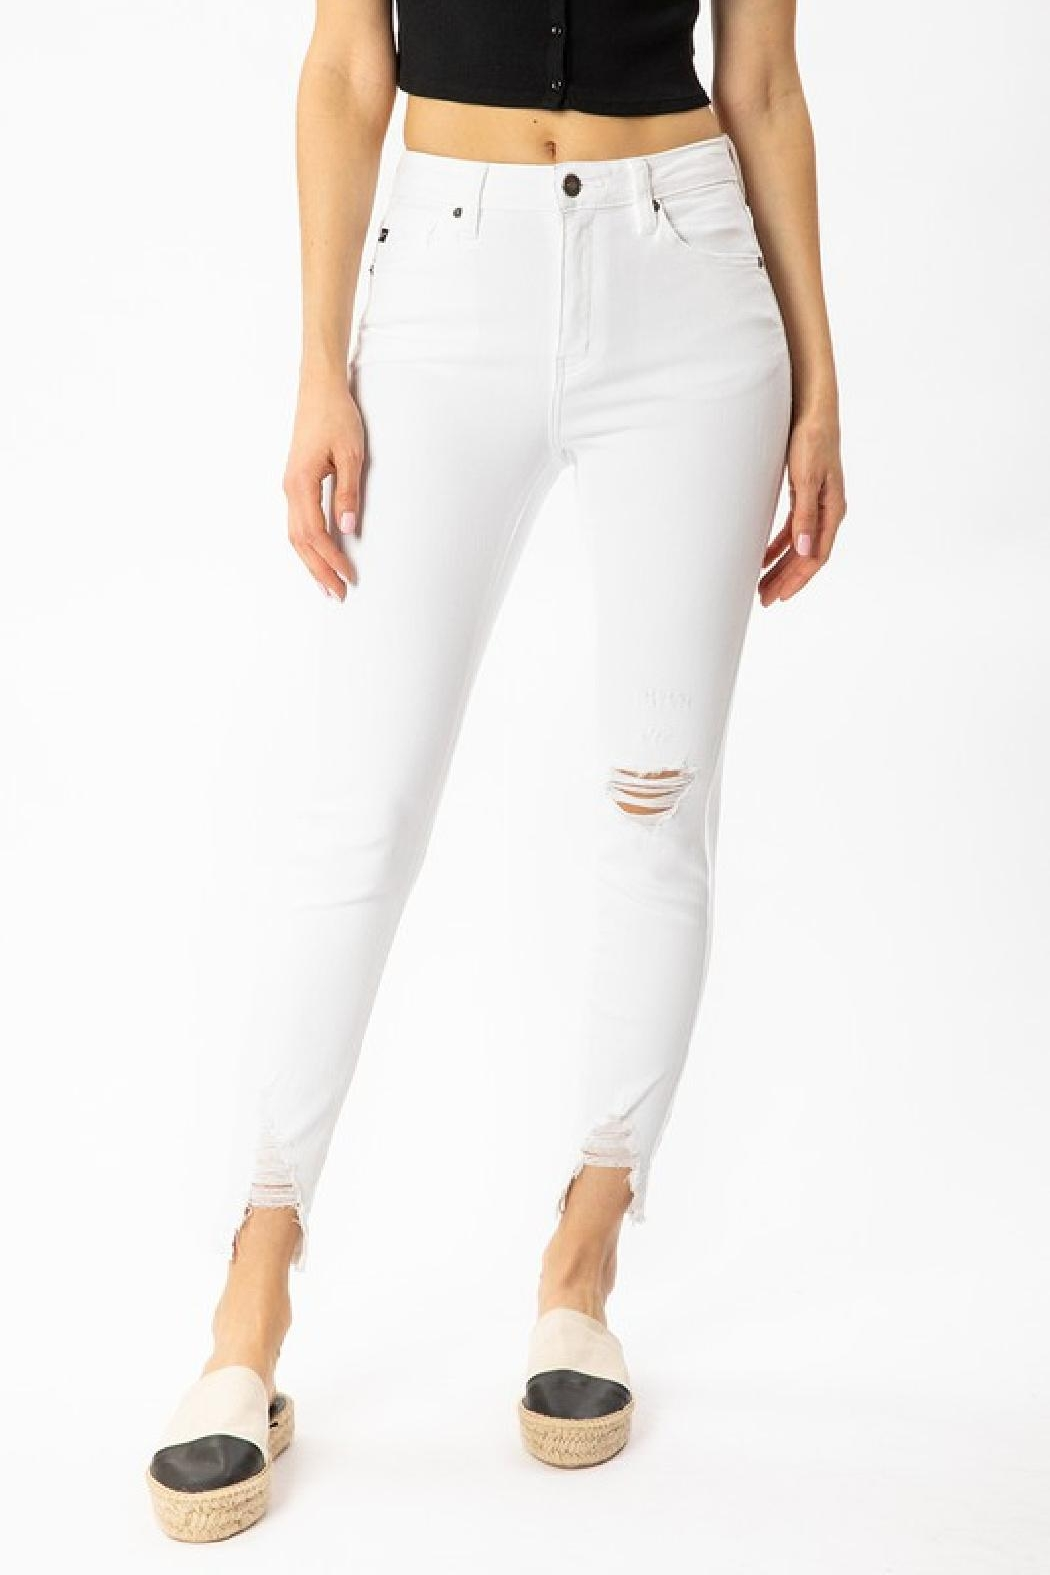 Kan Can White Distressed Jeans - Main Image